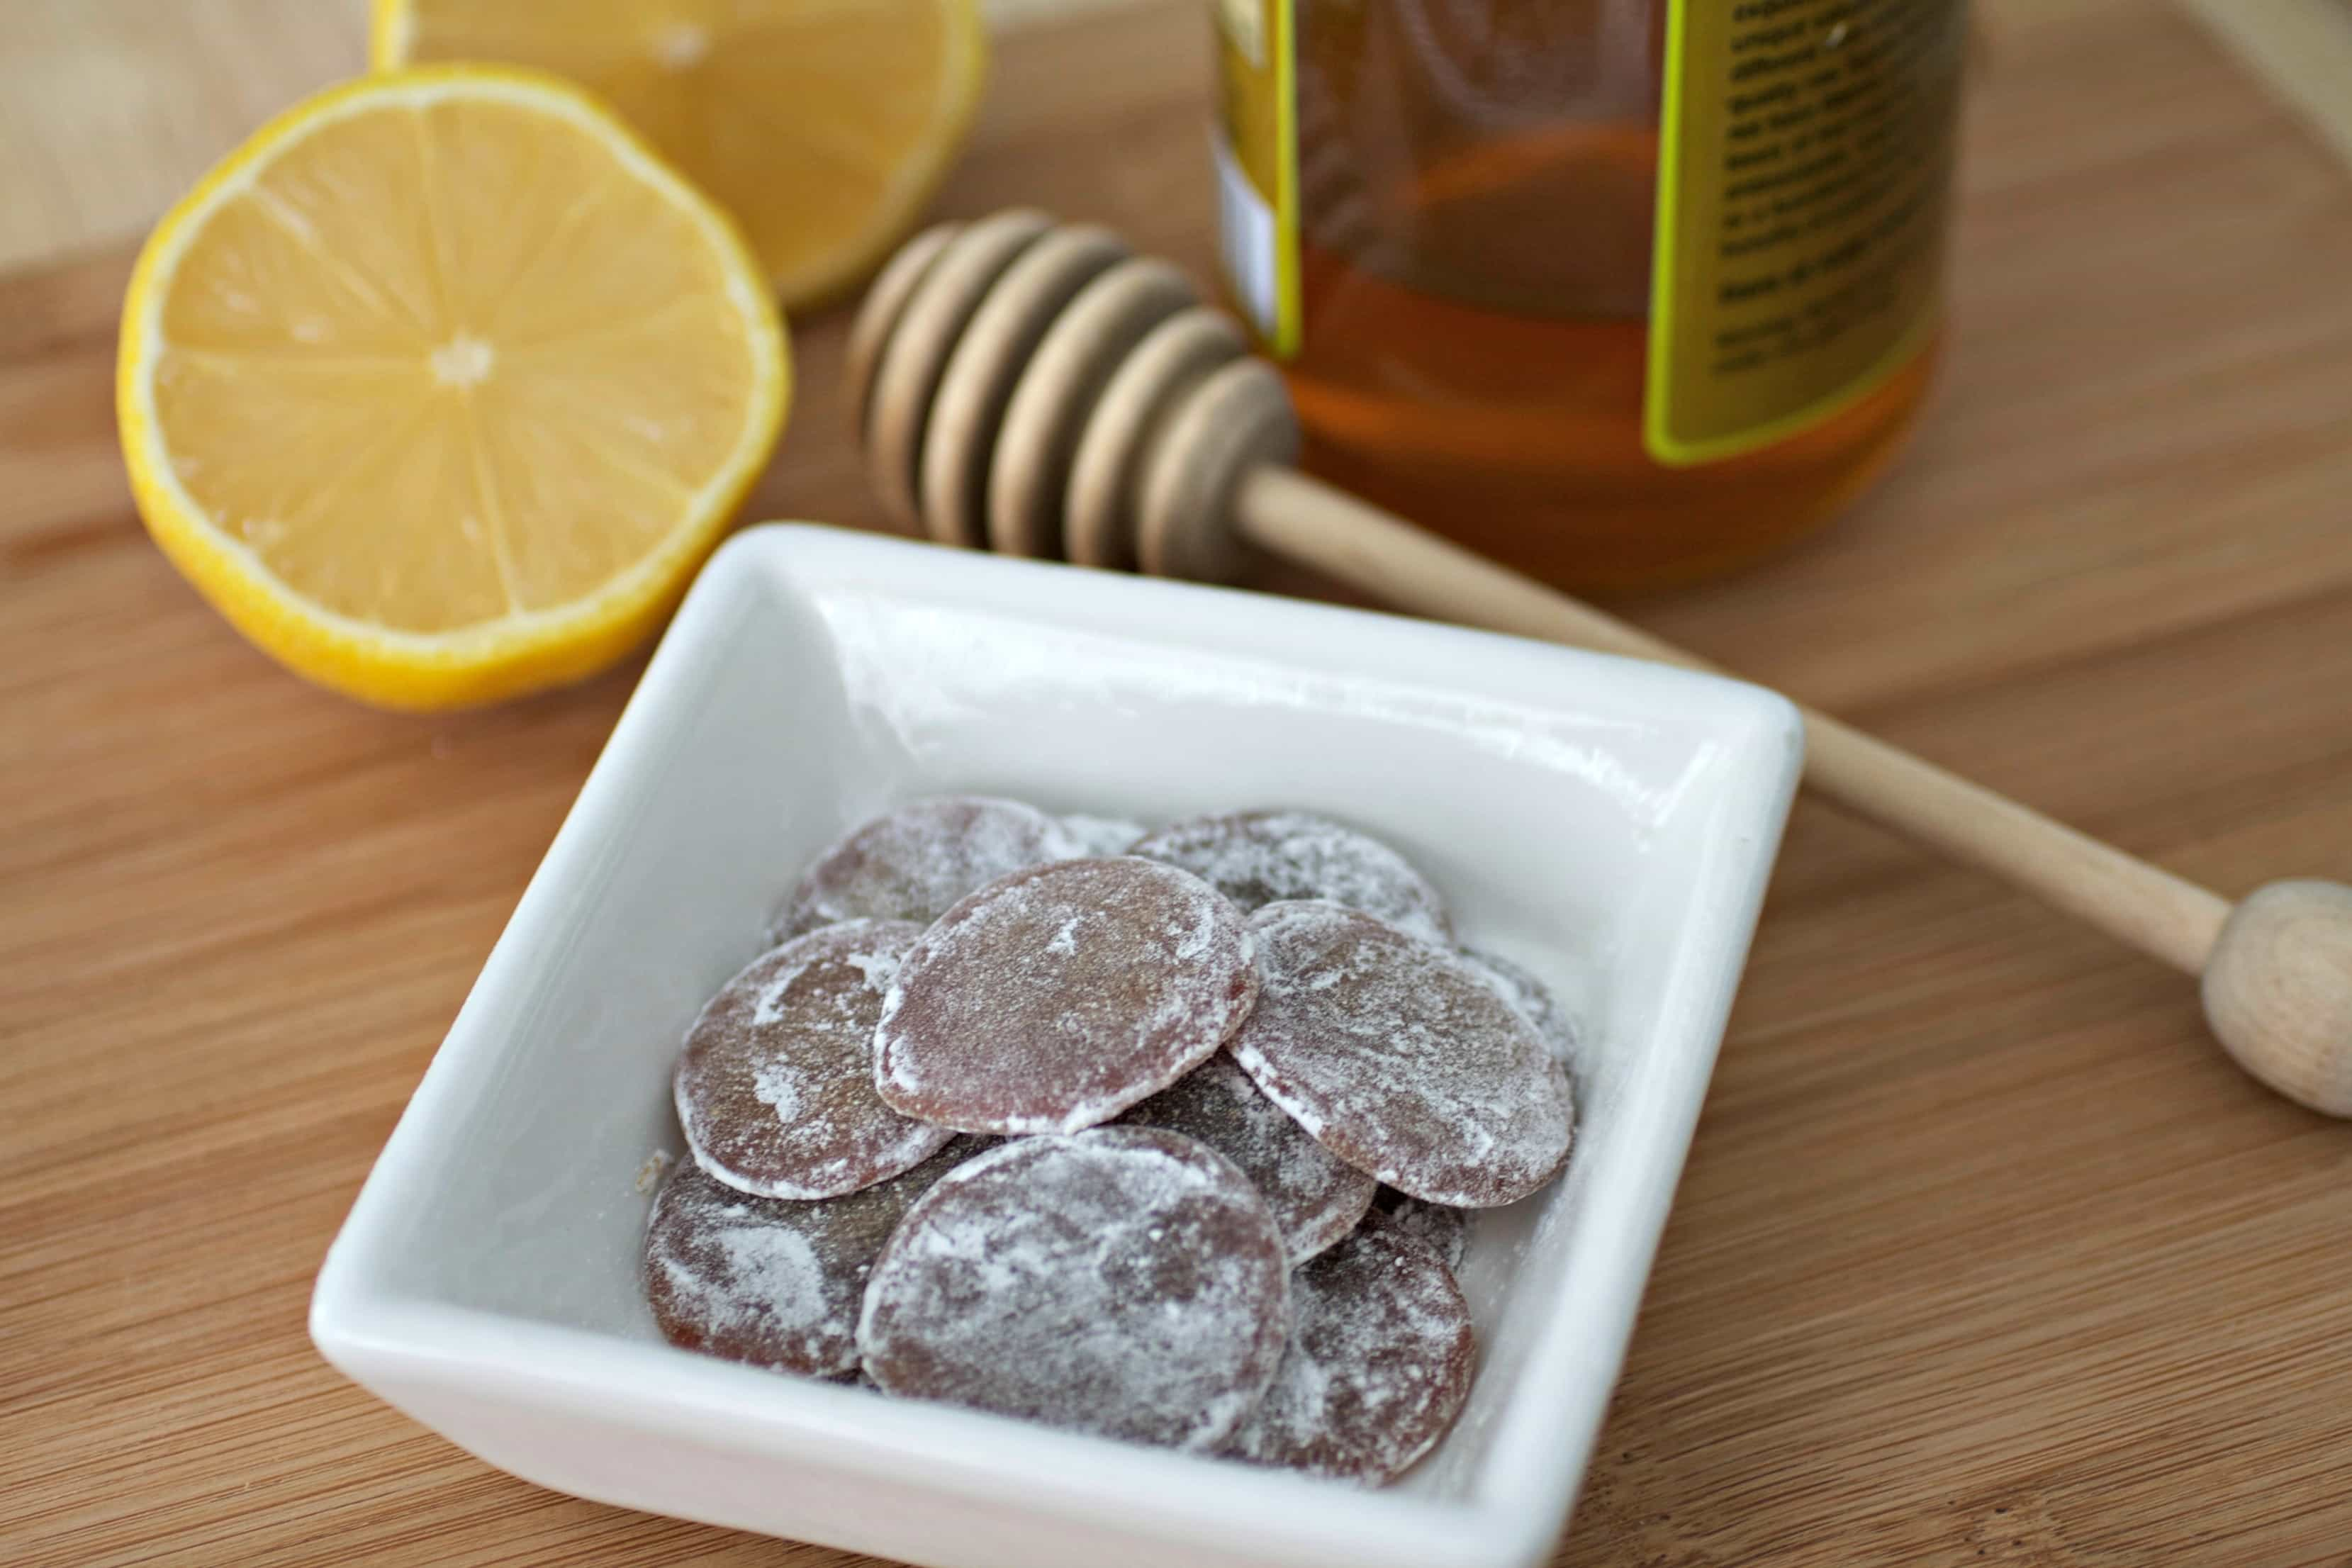 Homemade honey lemon cough drops with jar of honey on side